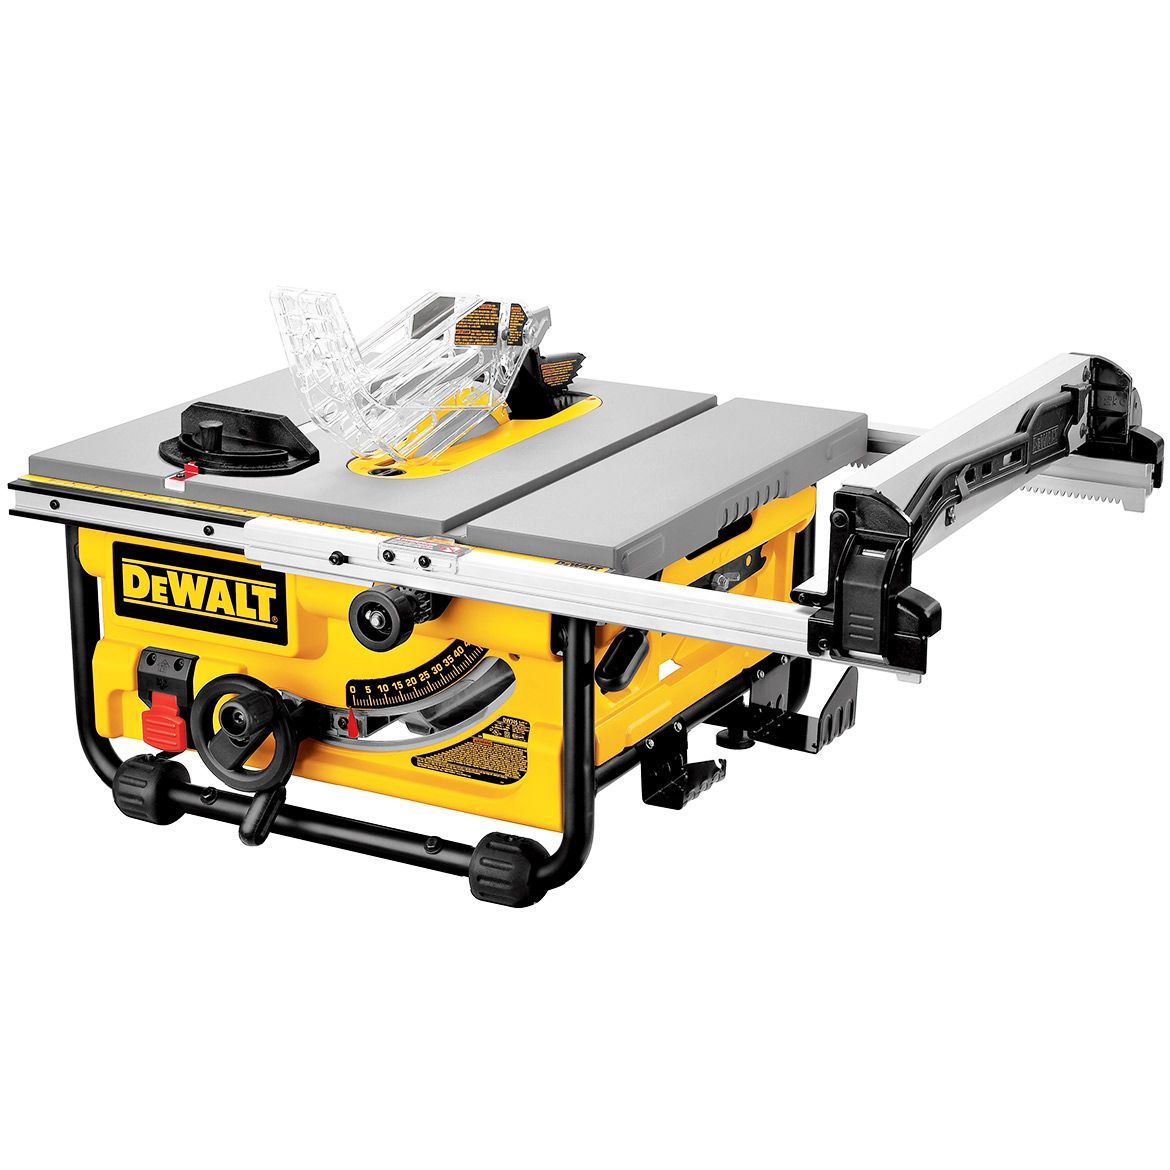 Dewalt Dw745 10 Inch Site Pro Modular Portable Jobsite Table Saw Best Table Saw 10 Inch Table Saw Jobsite Table Saw